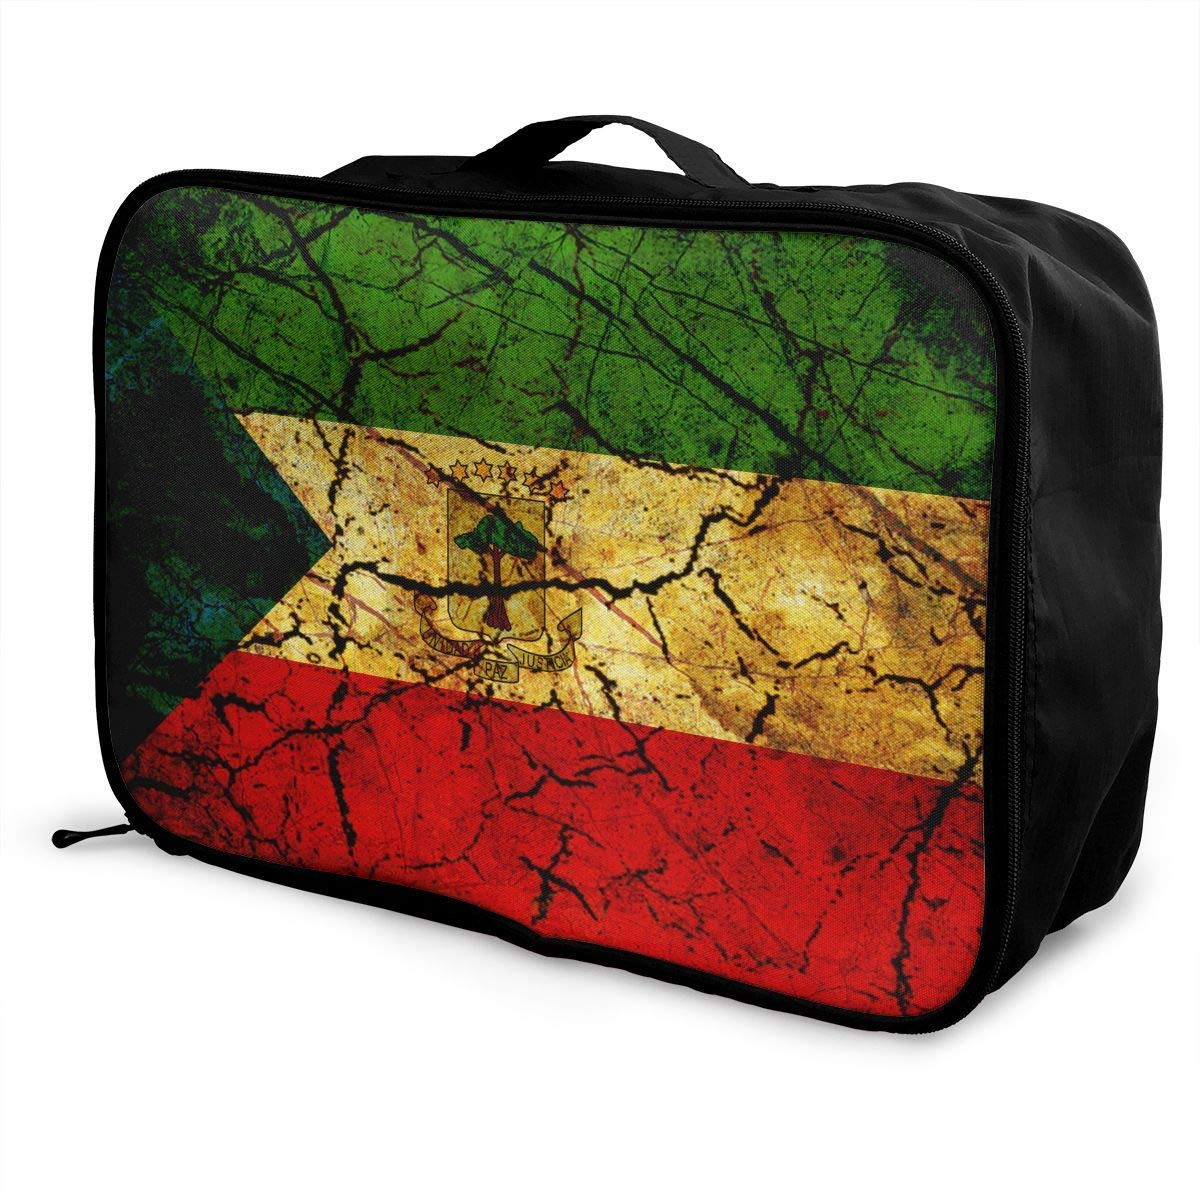 Portable Luggage Duffel Bag Vintage Equatorial Guinea Travel Bags Carry-on In Trolley Handle